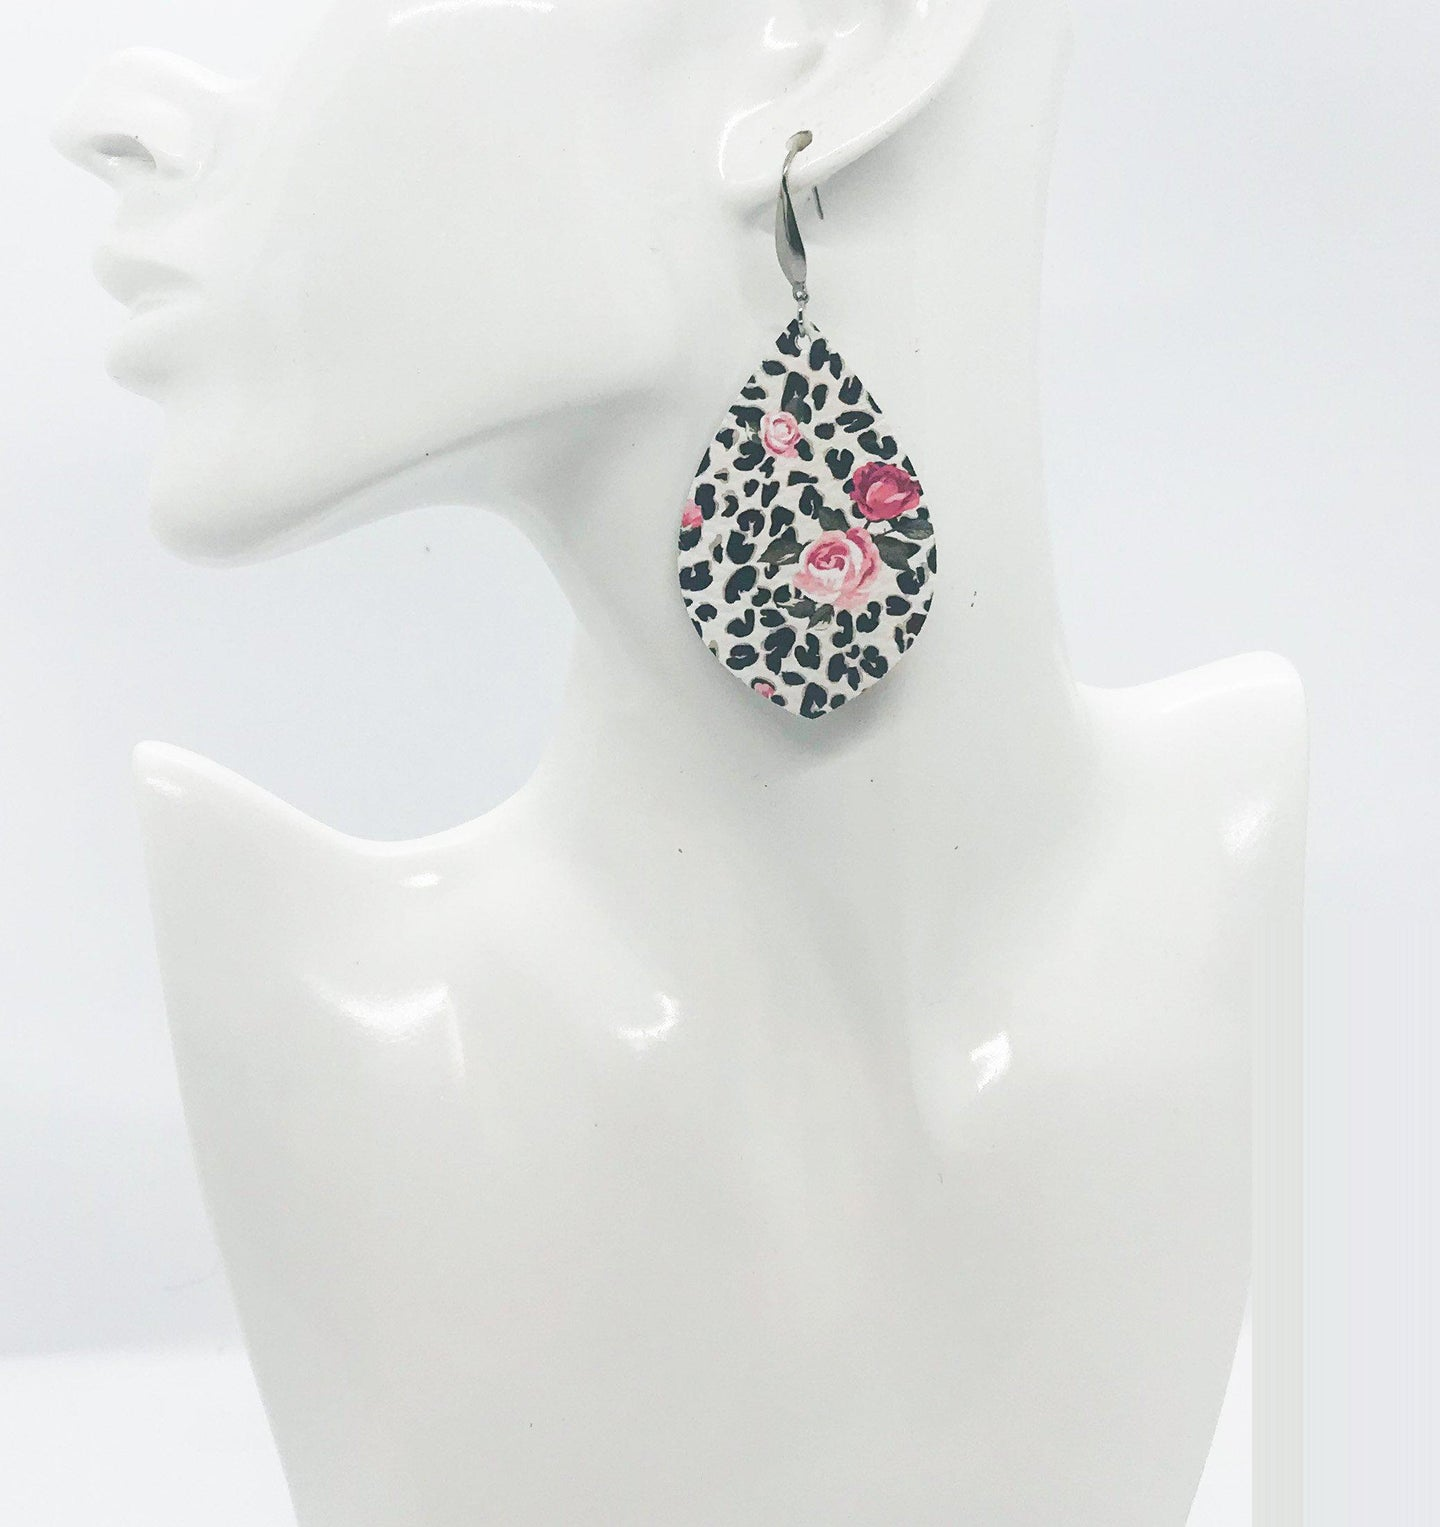 Roses over Black Leopard Spotted Leather Earrings - E19-1692